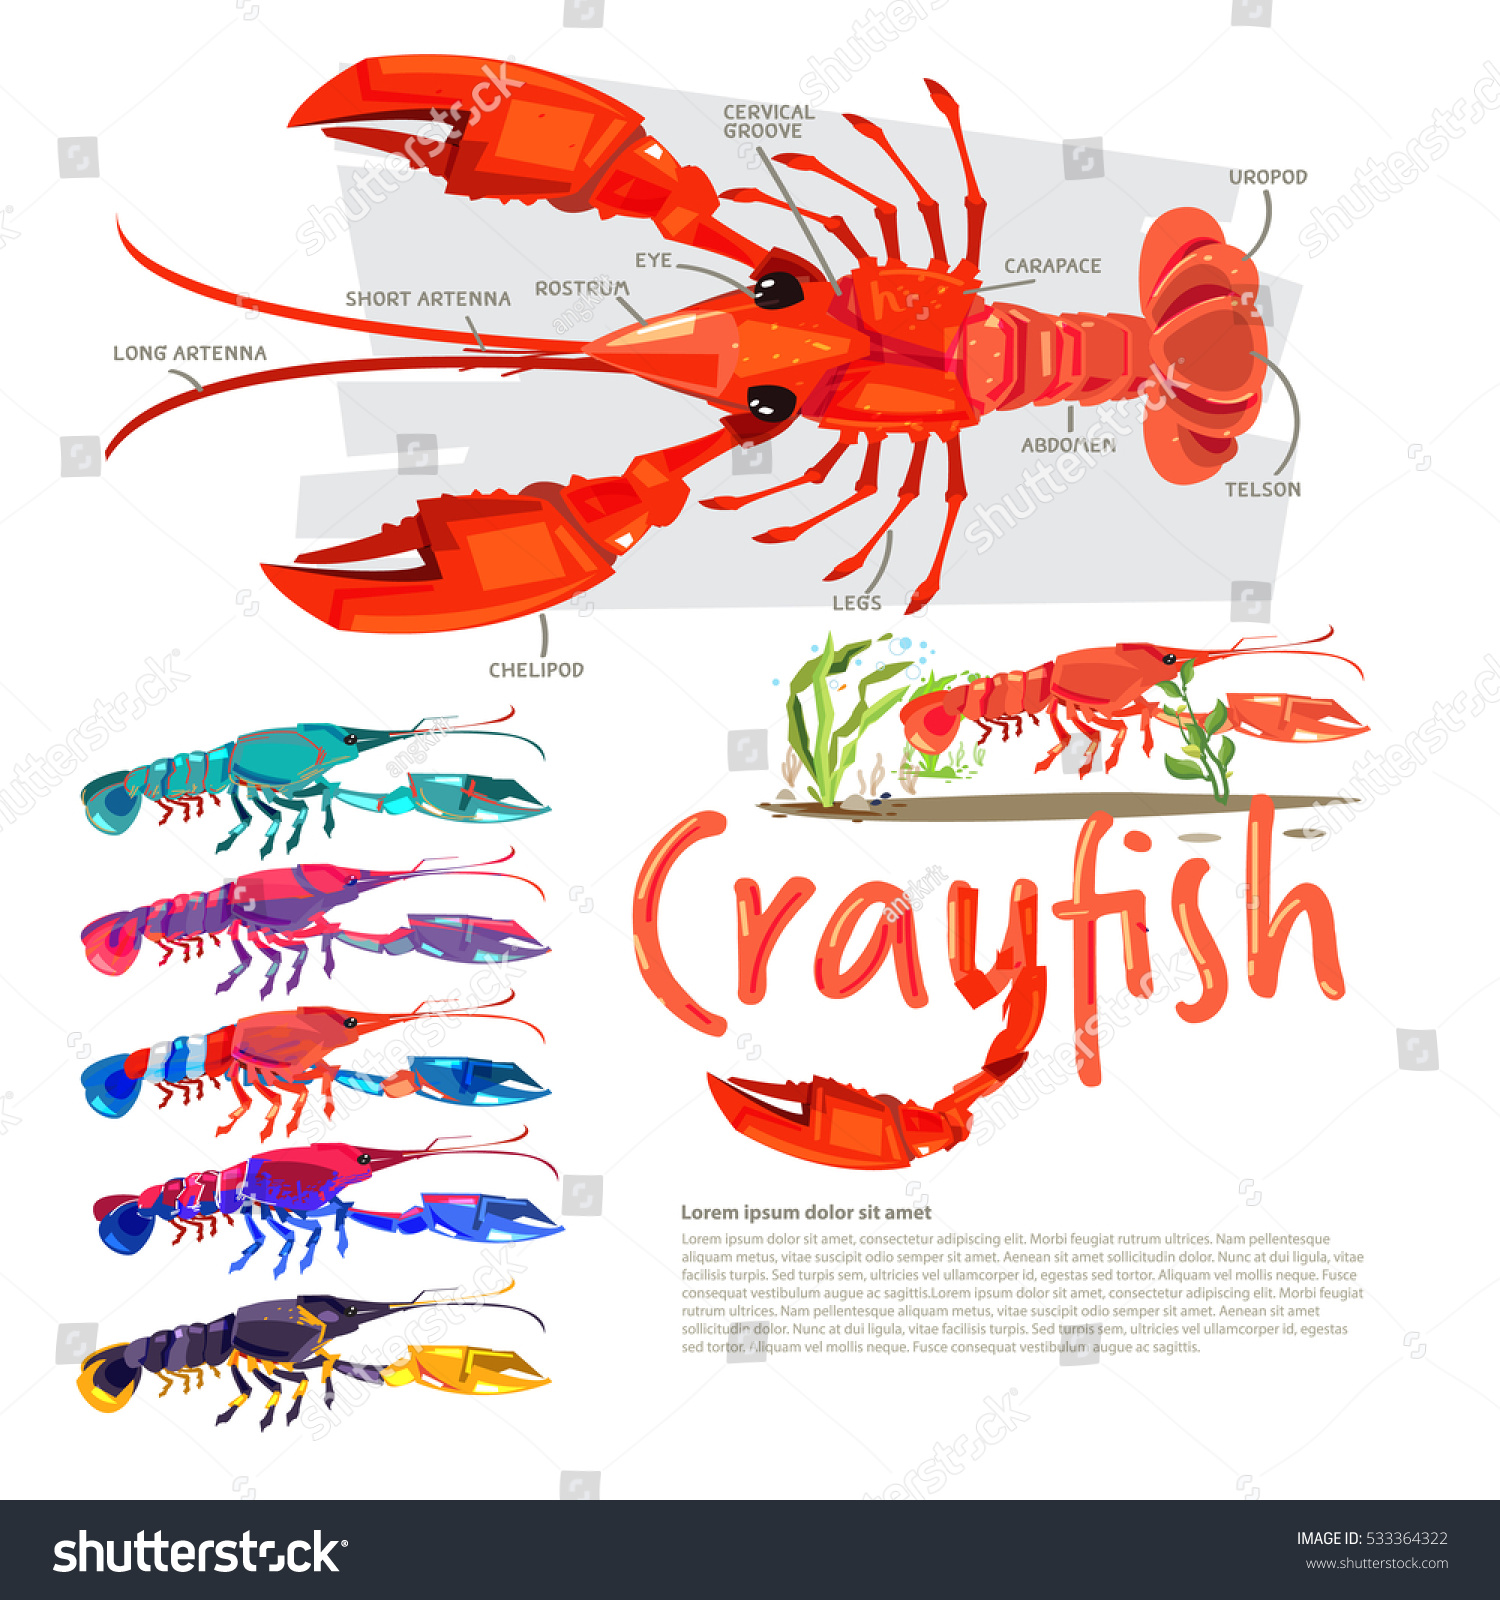 Crayfish With Information. Infographic Style. Separate